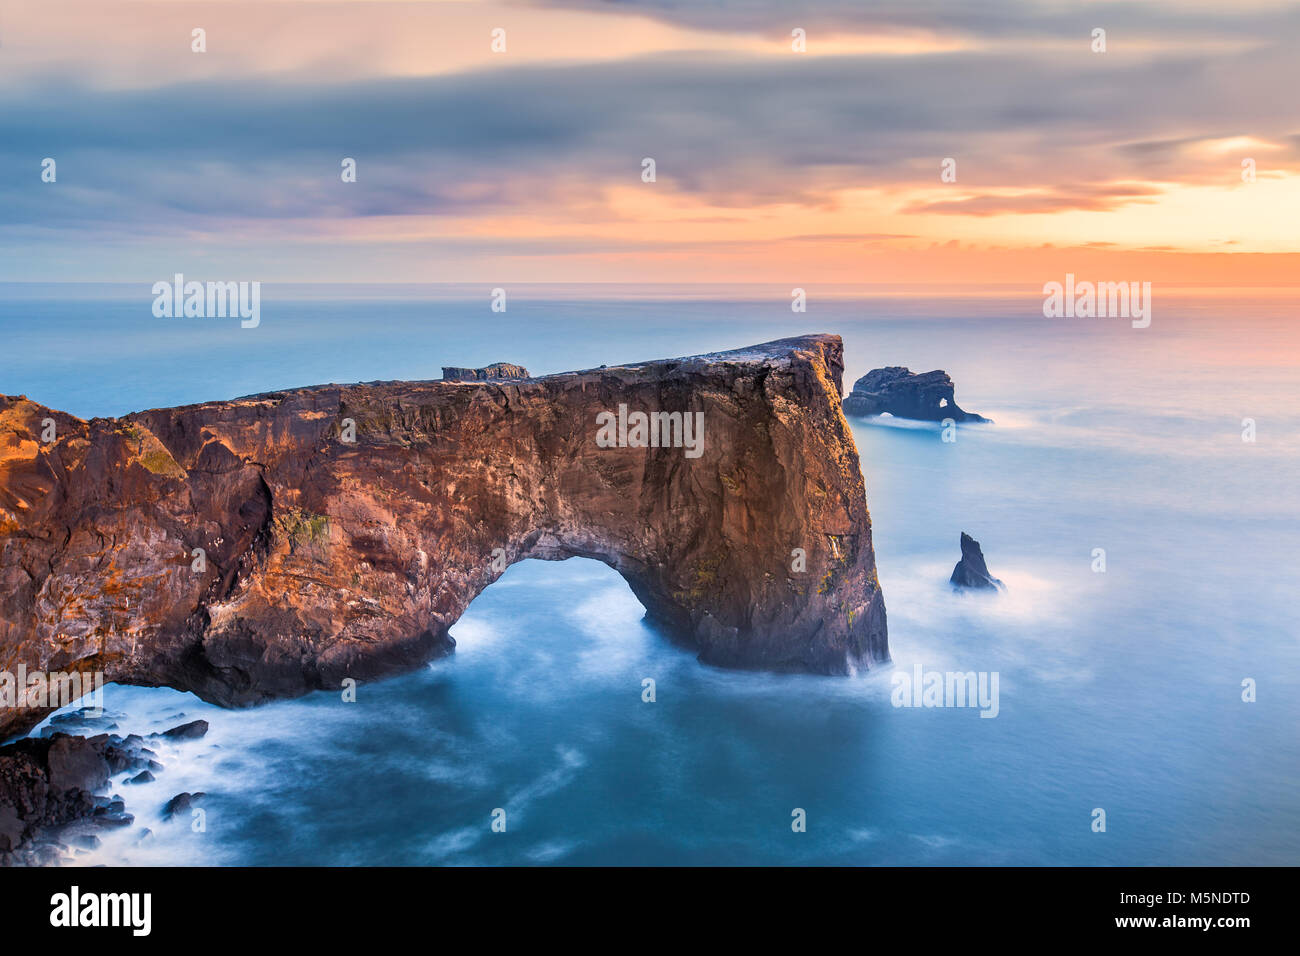 Dyrholaey rock formation at sunset. Dyrholaey is a promontory located on the south coast of Iceland, not far from - Stock Image